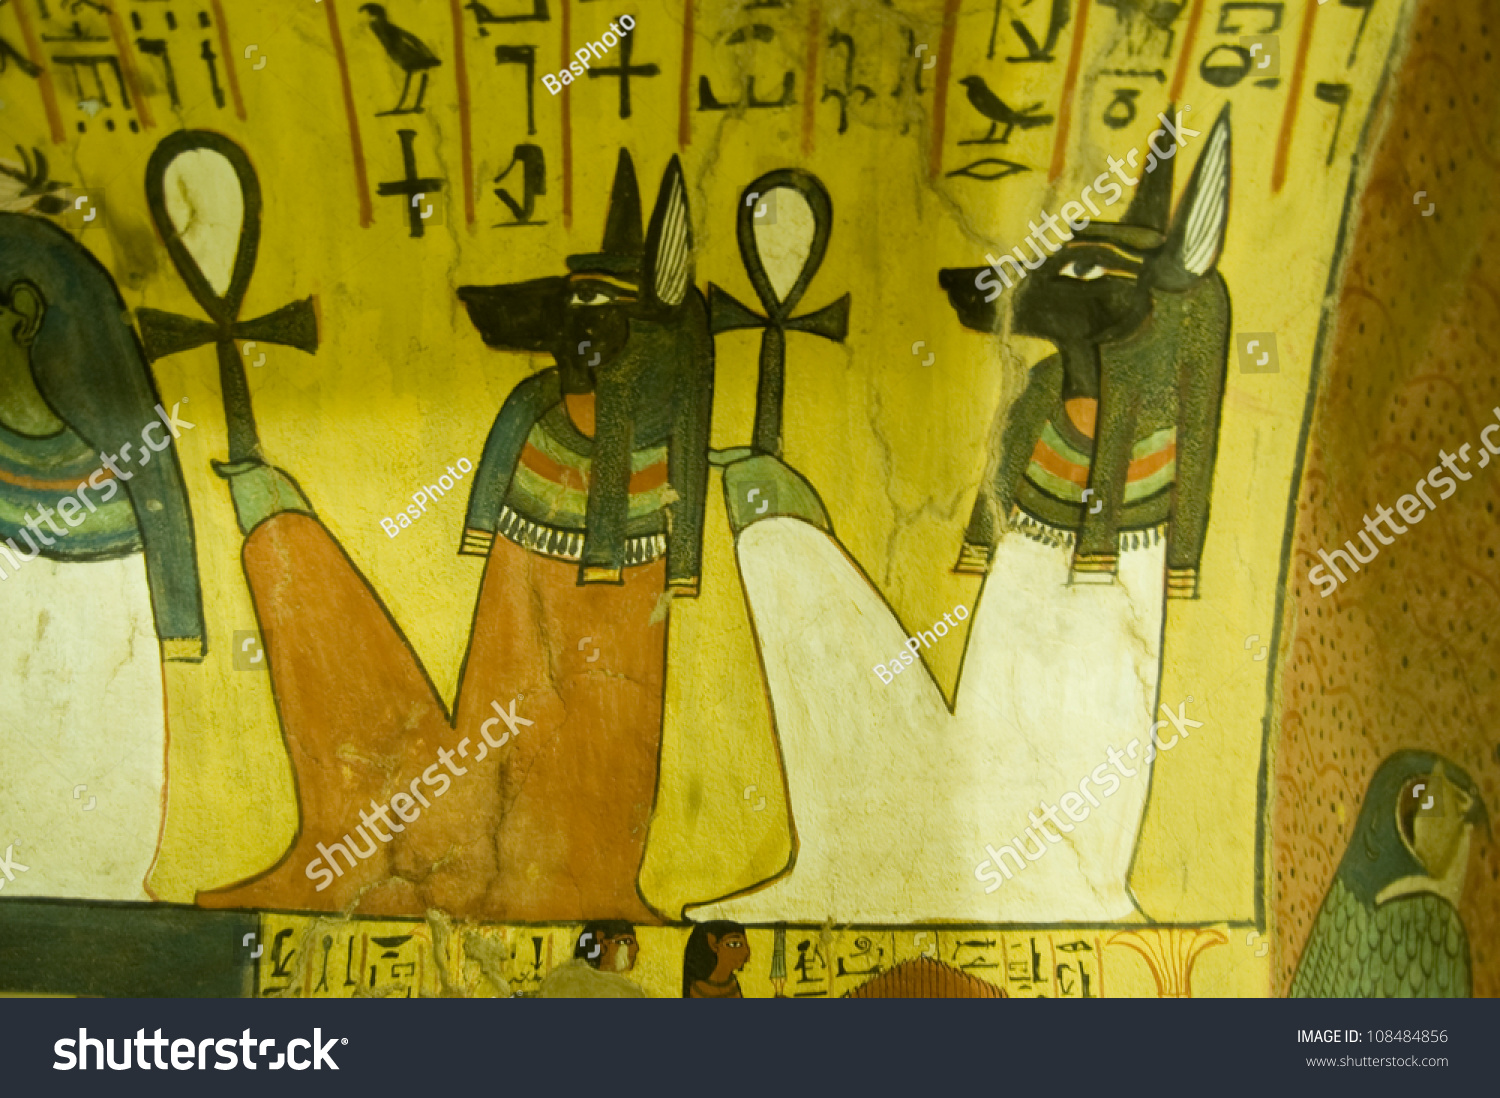 Ancient Egyptian Wall Painting Anubis Gods Stock Photo (Royalty Free ...